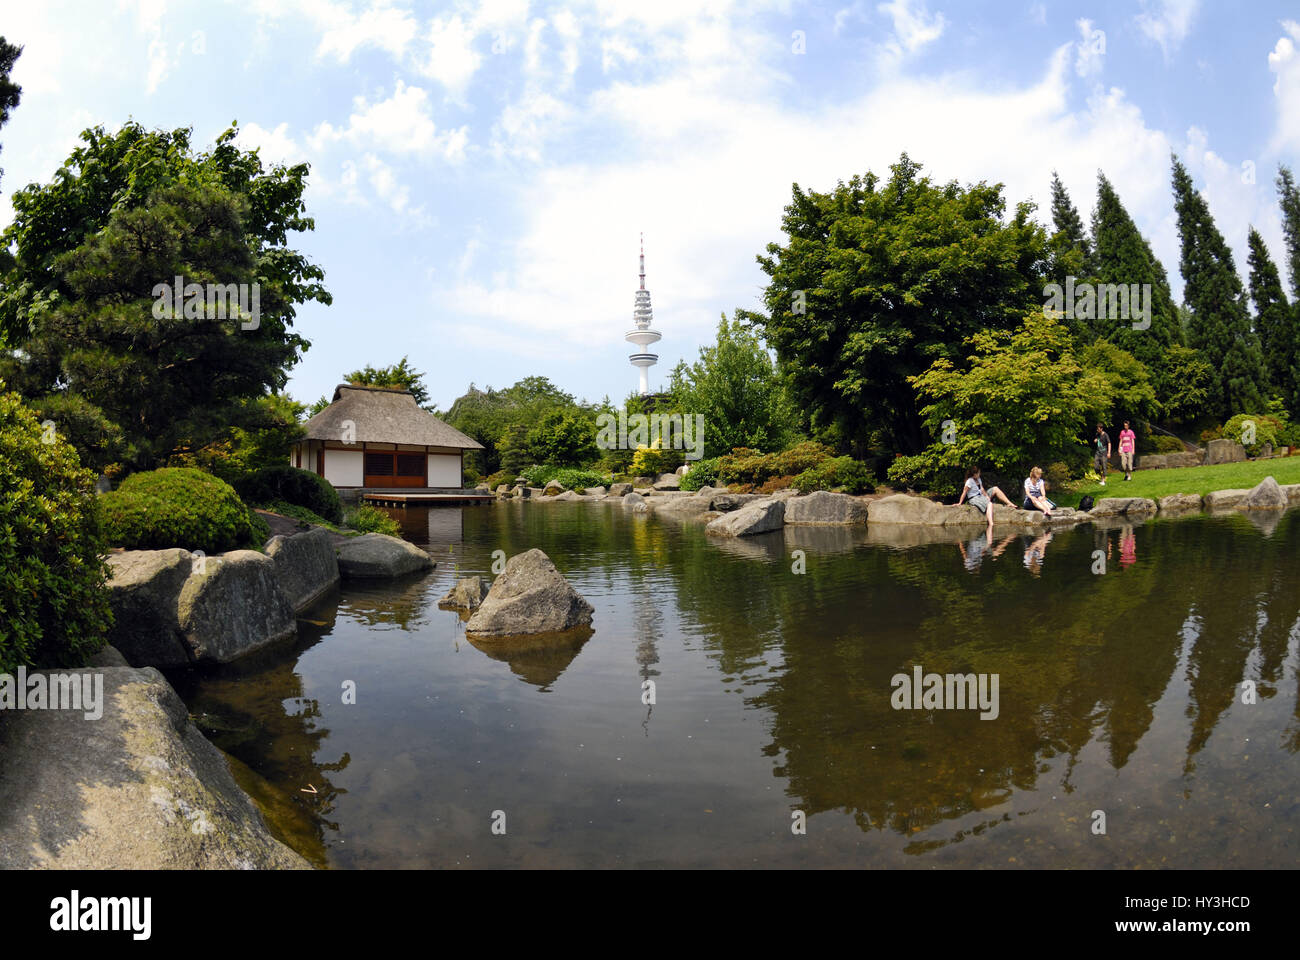 Japanese Garden In The Park Planning Un Blomen In Hamburg Germany